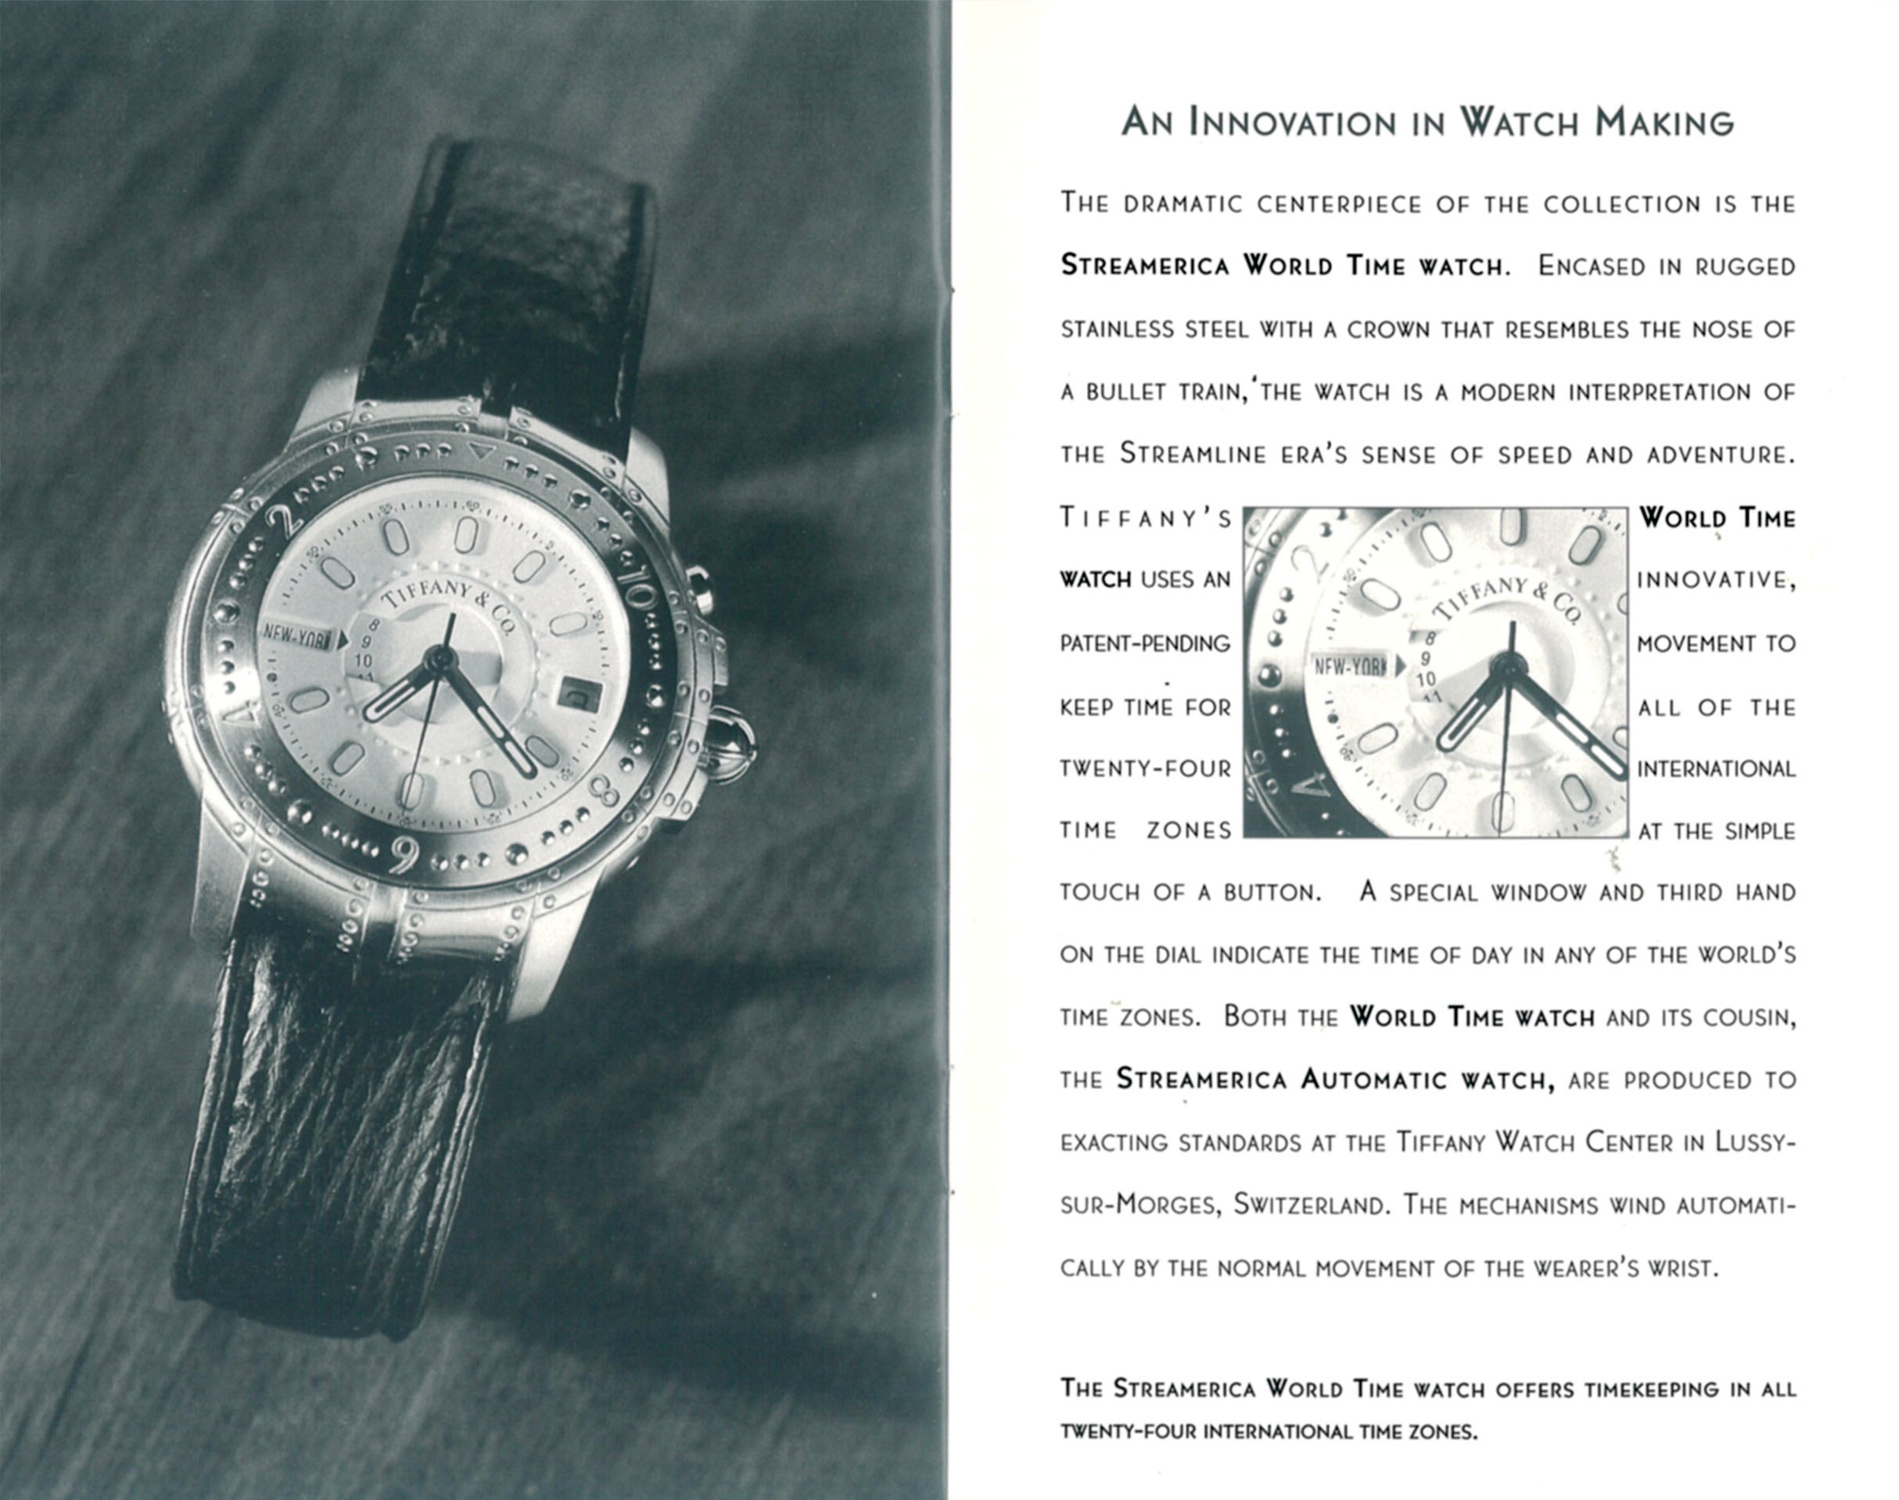 1993 Streamerica Blue Catalog by Tiffany & Co. World Time Watch movement details